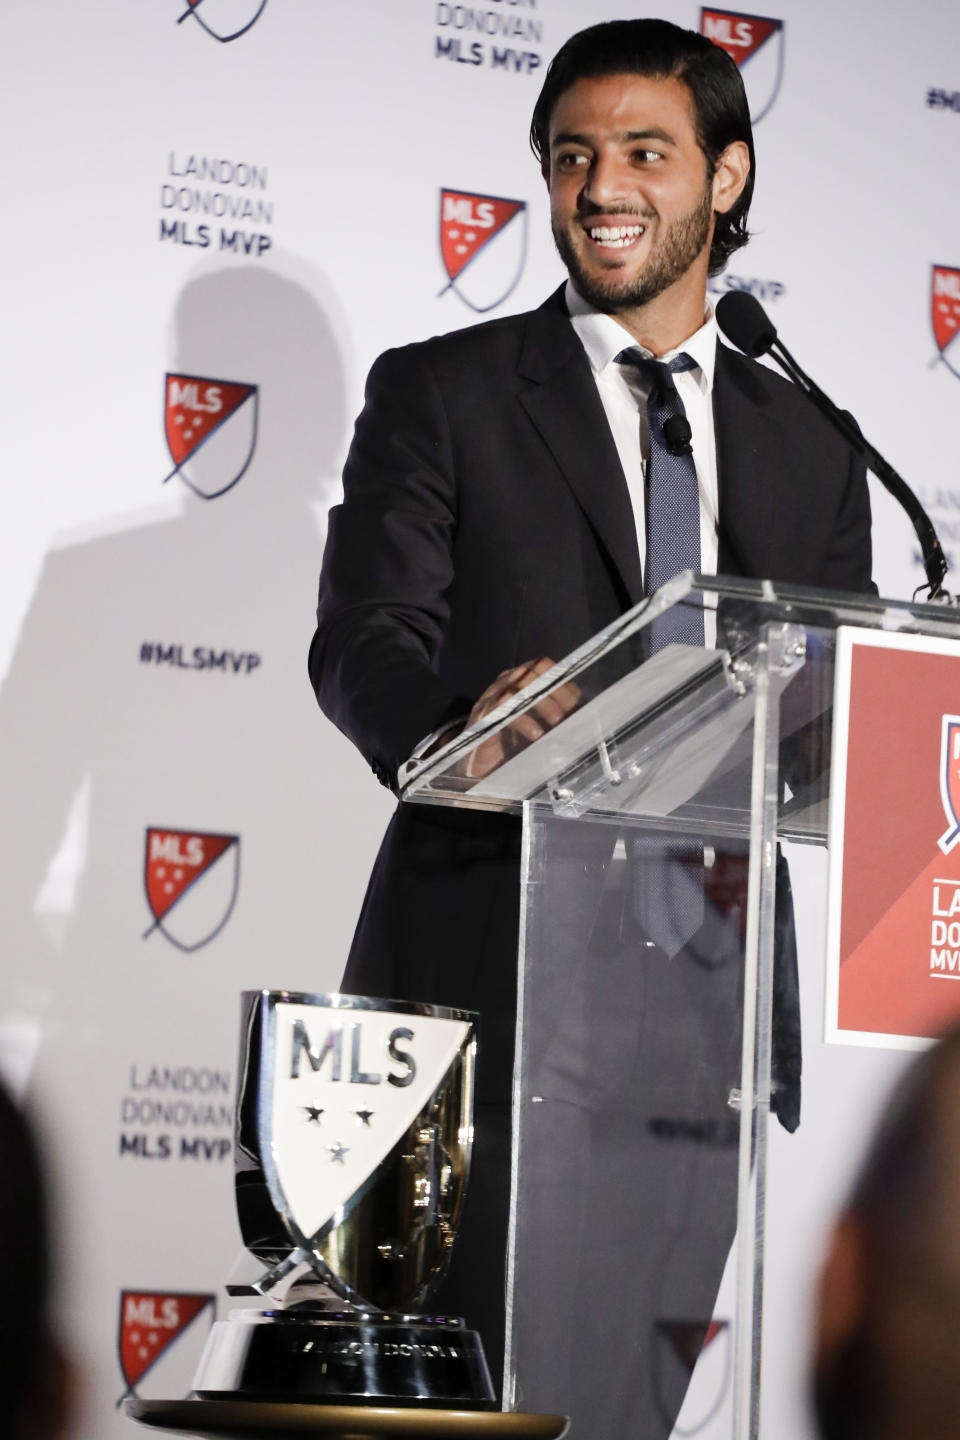 Major League Soccer's Los Angeles FC soccer player Carlos Vela smiles during a press conference after winning the Most Valuable Player award Monday, Nov. 4, 2019, in Los Angeles. Vela became the first Mexican player to win the MLS award. (AP Photo/Chris Carlson)